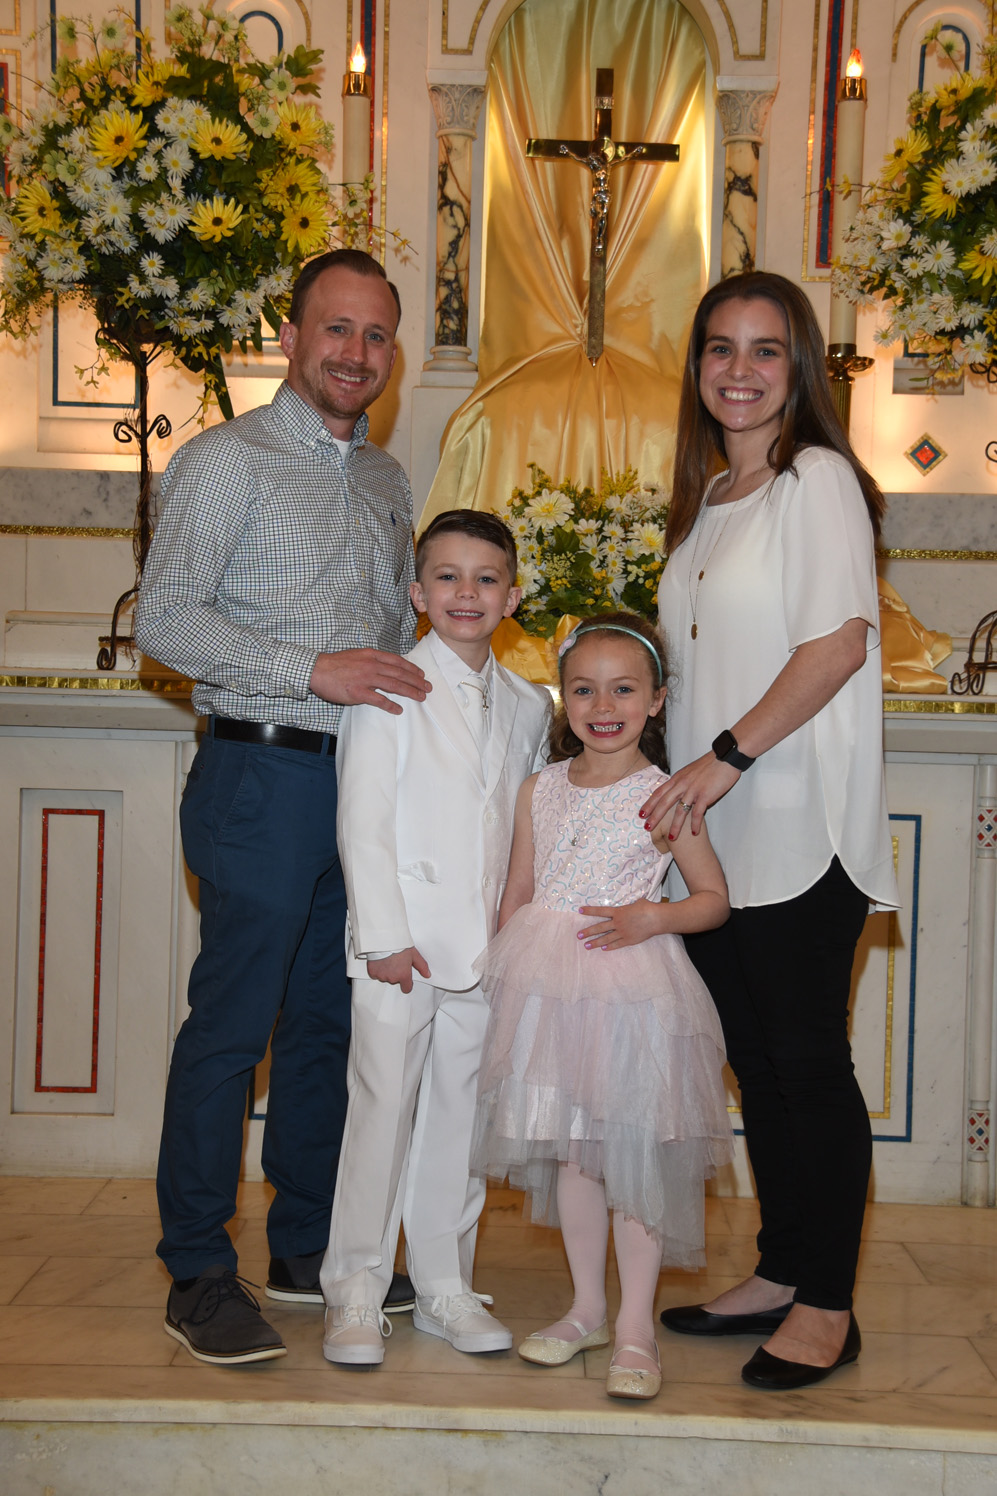 FIRST-COMMUNION-MAY-2-2021-1001001012